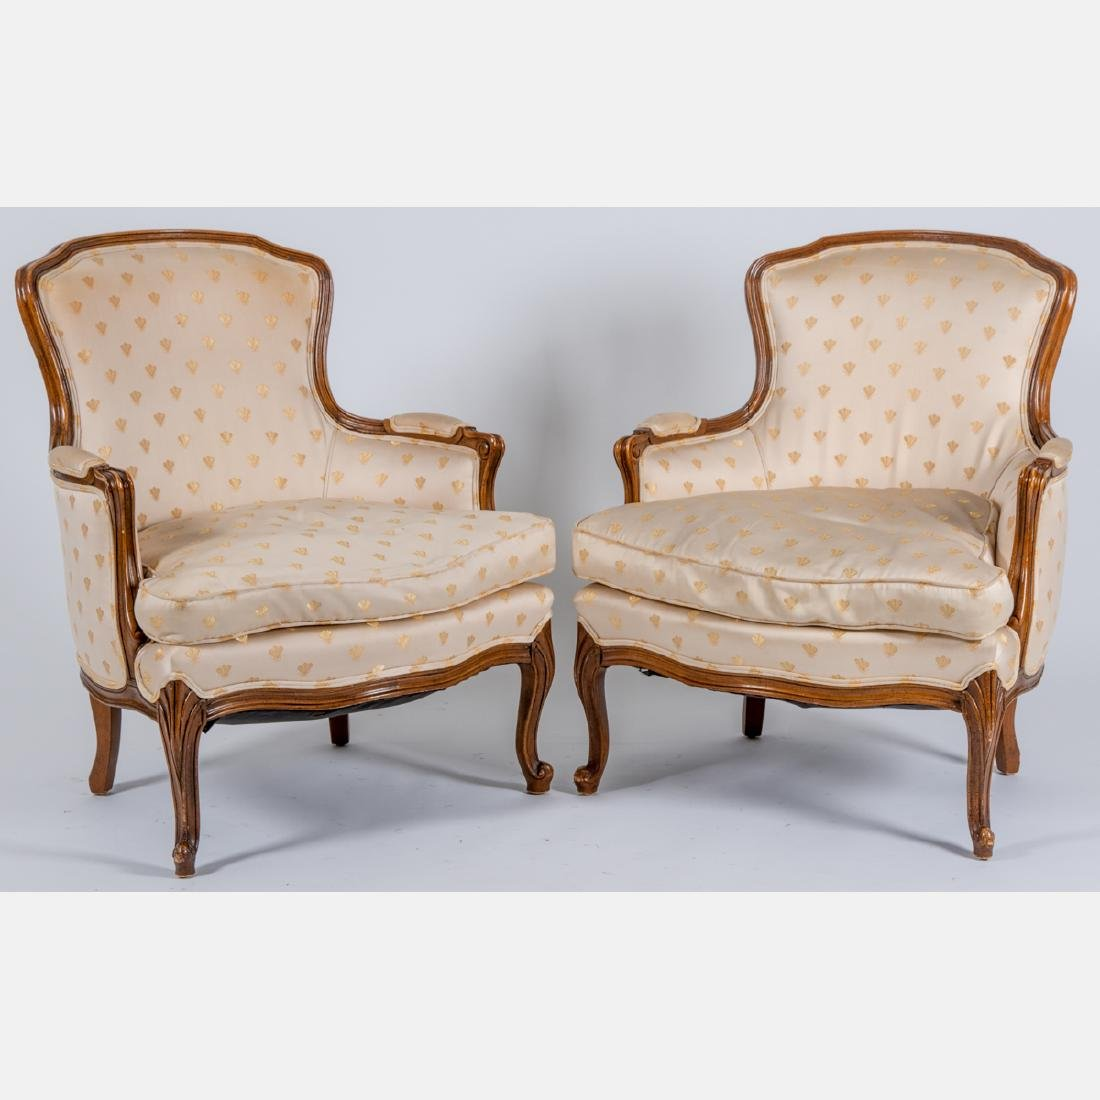 A Pair of Louis XV Style Bergeres by Meyer, Gunther and